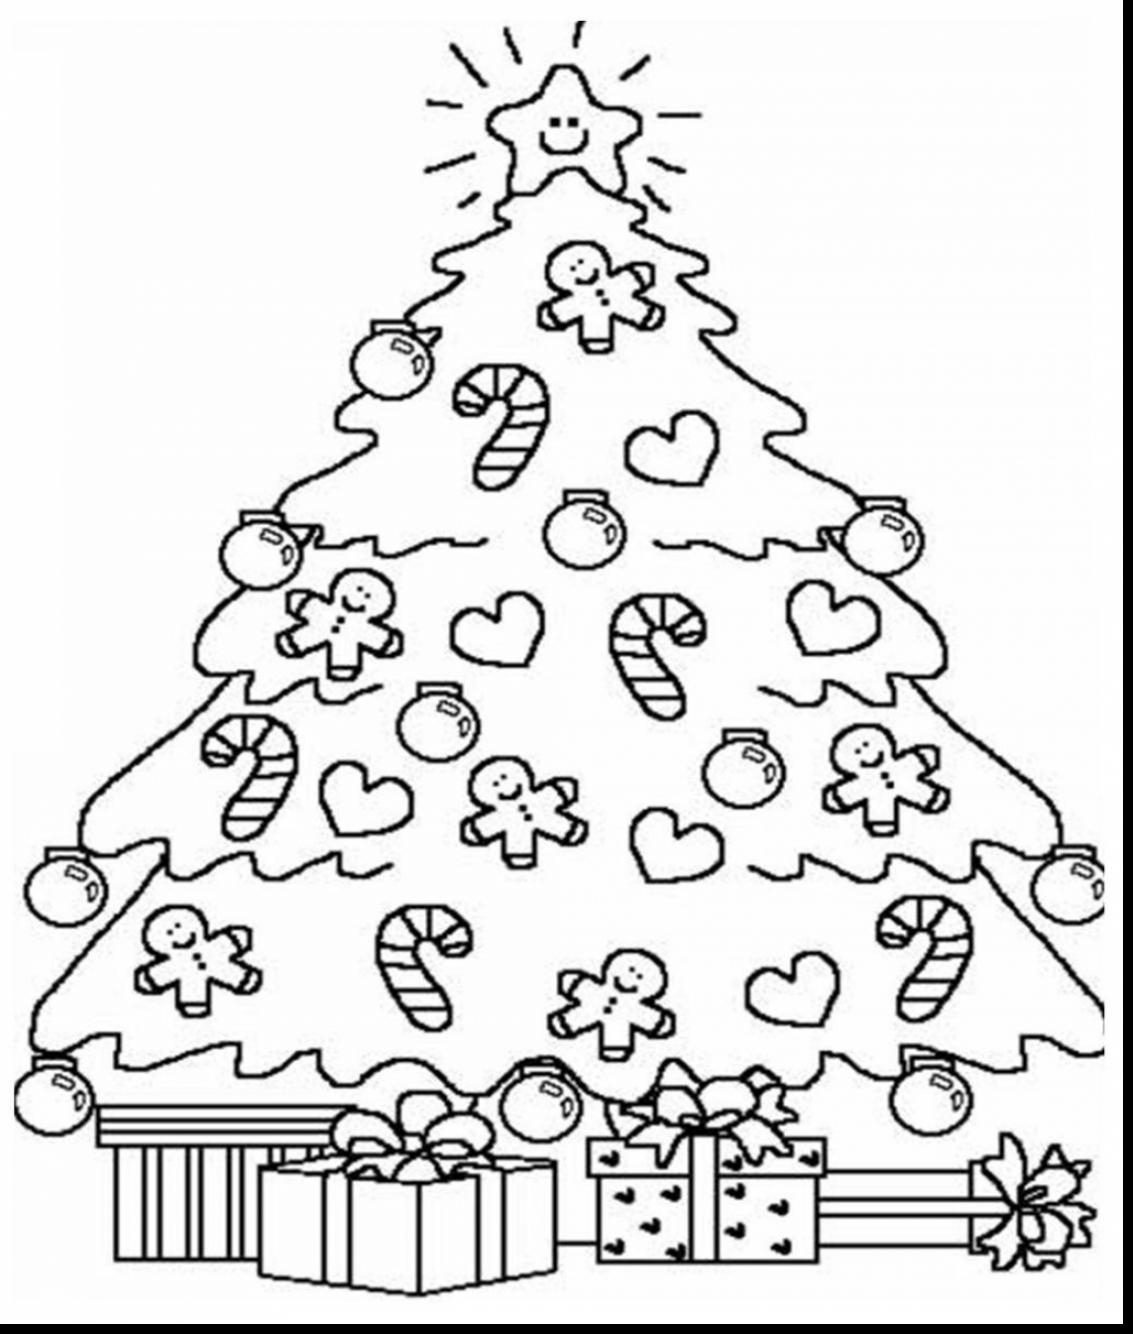 Christmas Tree Coloring Pages Printable Coloring Pages Fascinating to Print Of Noted Coloring Picture A Tree Pages Unknown Resolutions Printable